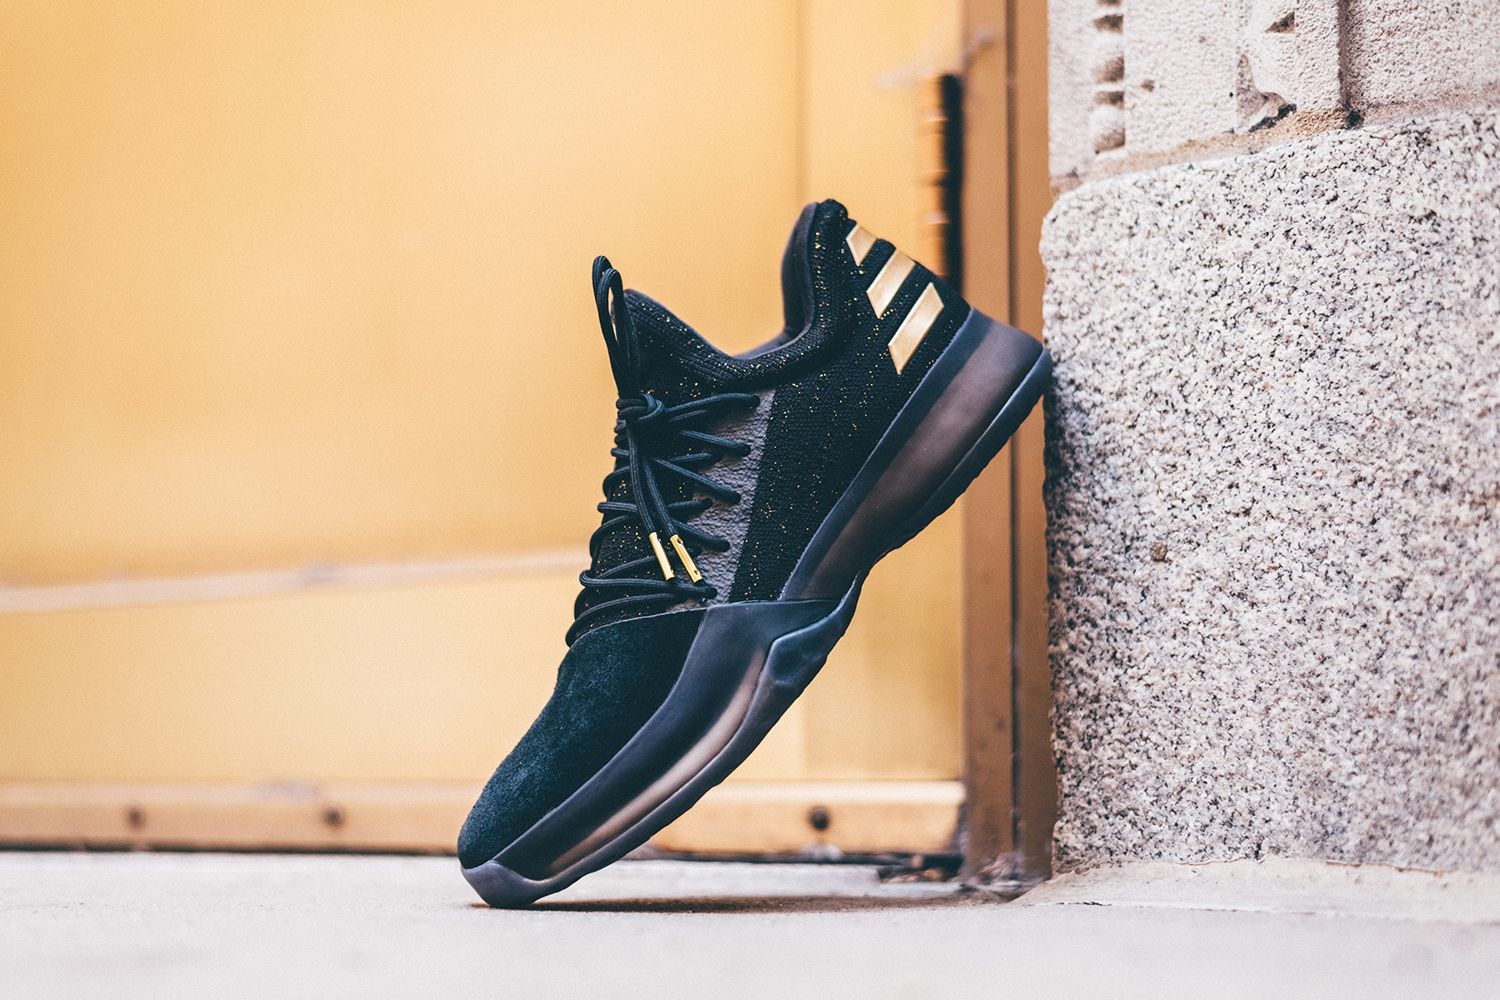 lowest price c5584 3474b After getting a look at the silhouette last month, here we showcase the  first colorway that adidas is releasing of James Harden s Harden Vol. 1  signature.